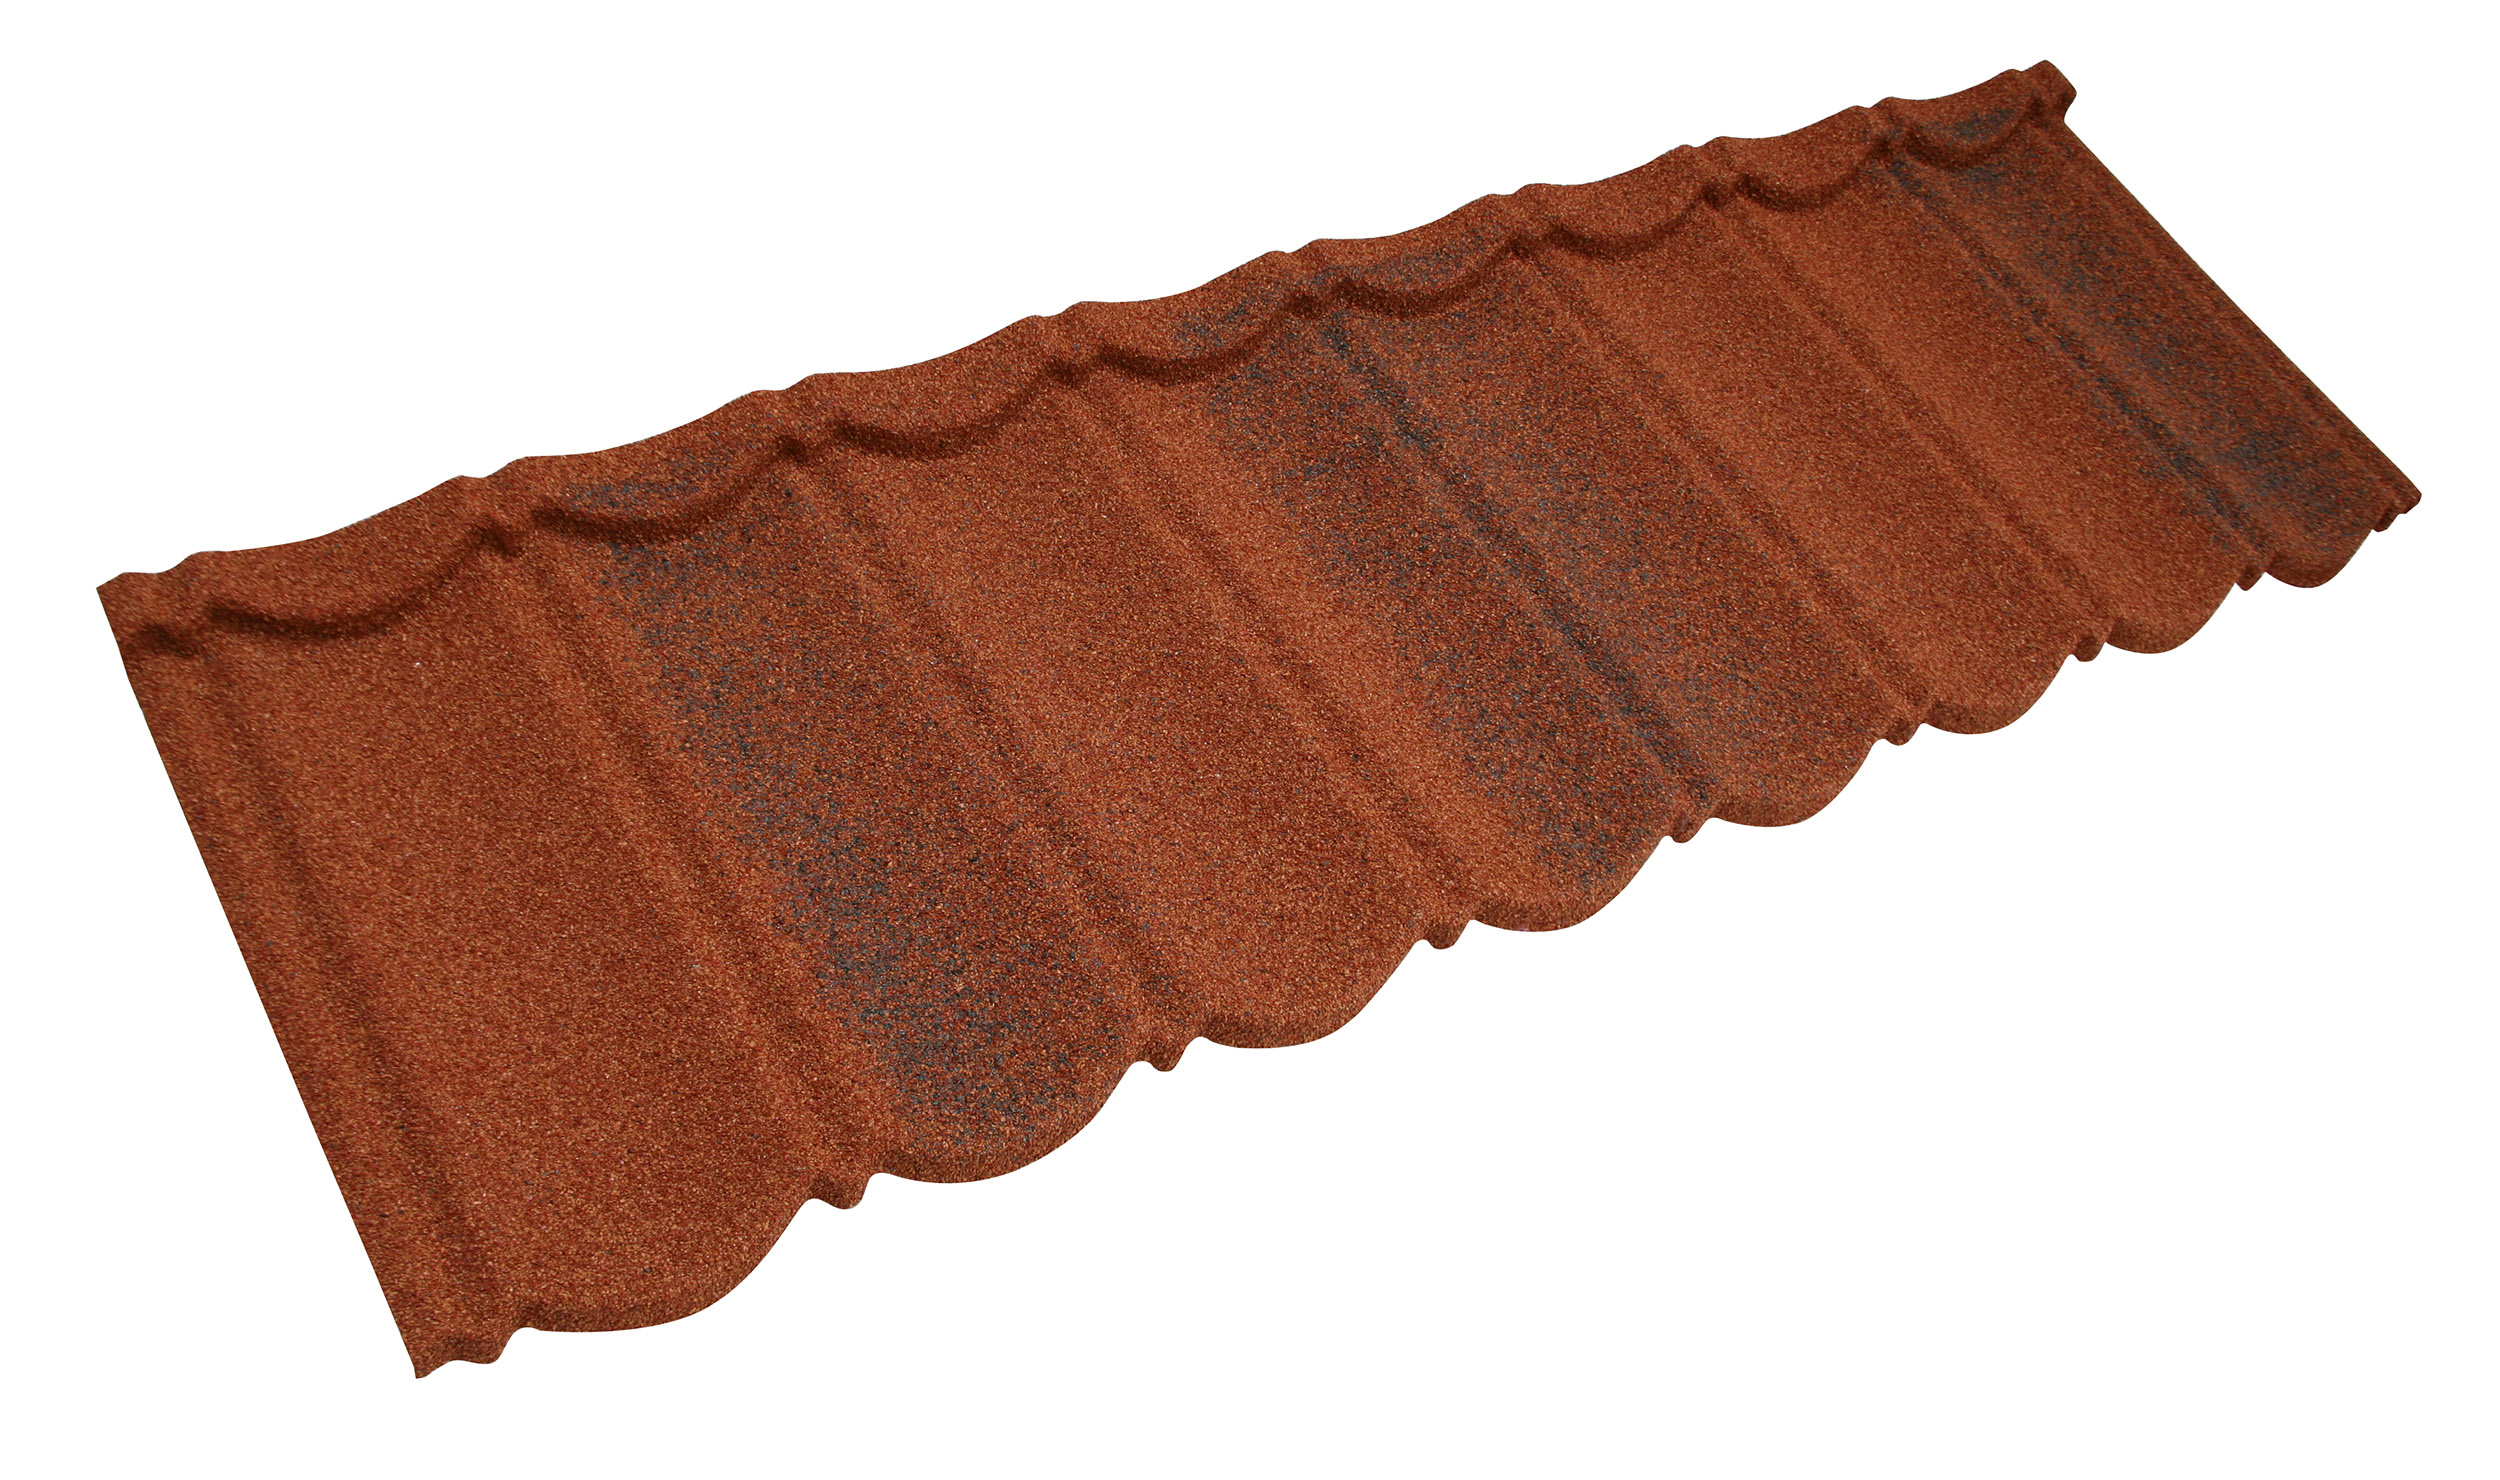 Metrotile Bond Lightweight Roofing Tile Profile in Brindle